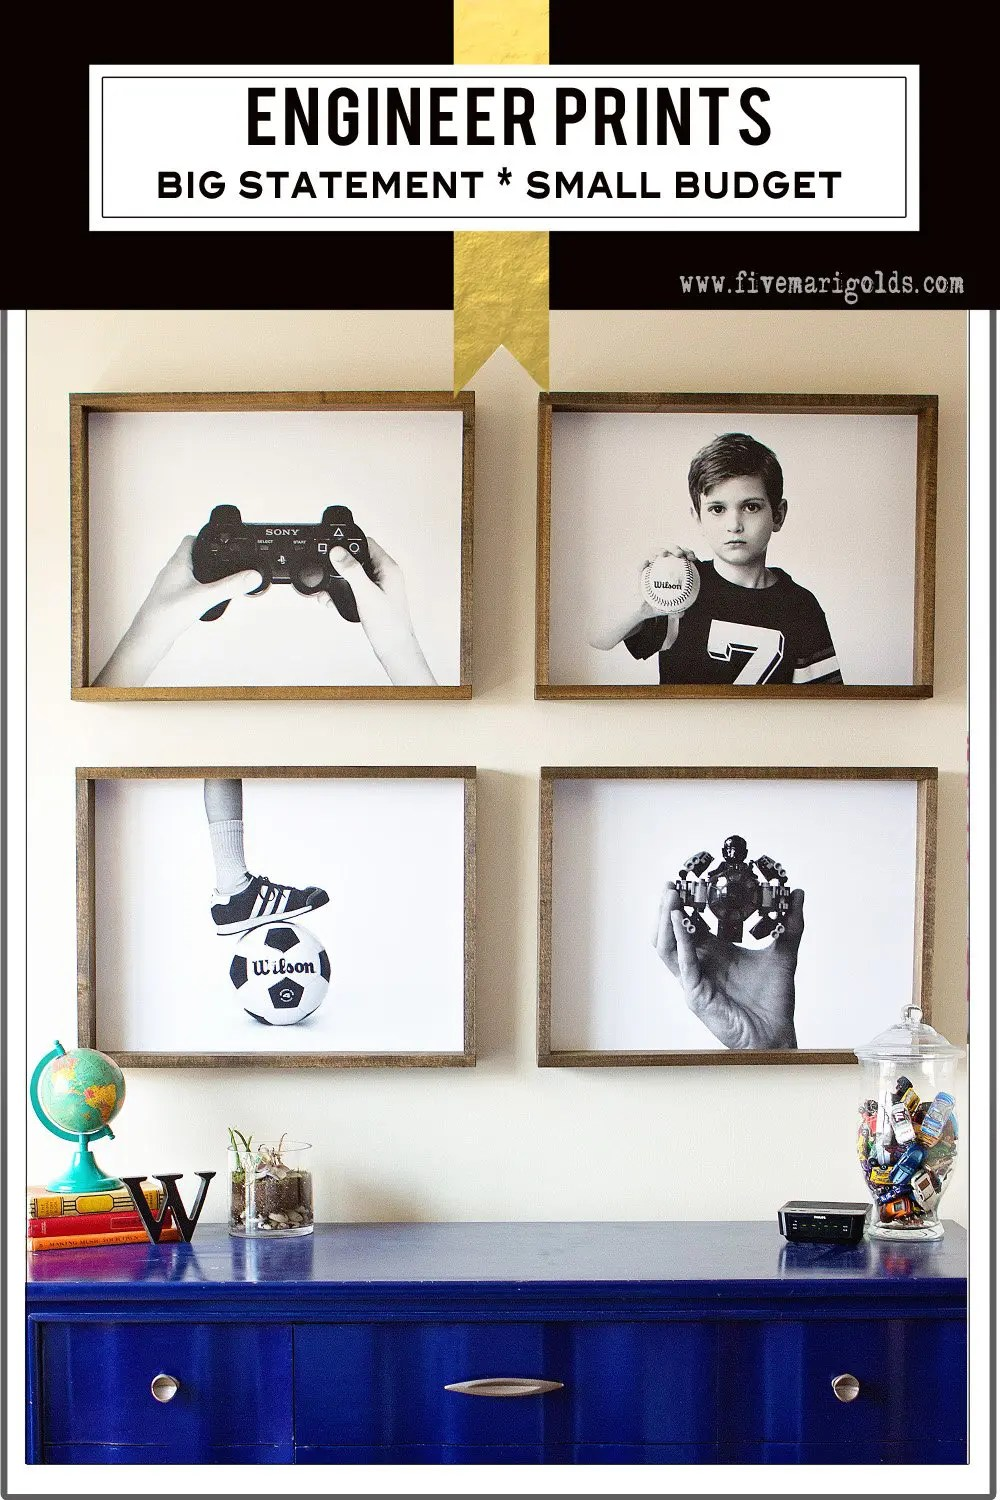 Engineer prints make a big statement on a small budget. Love these for a boy's room!